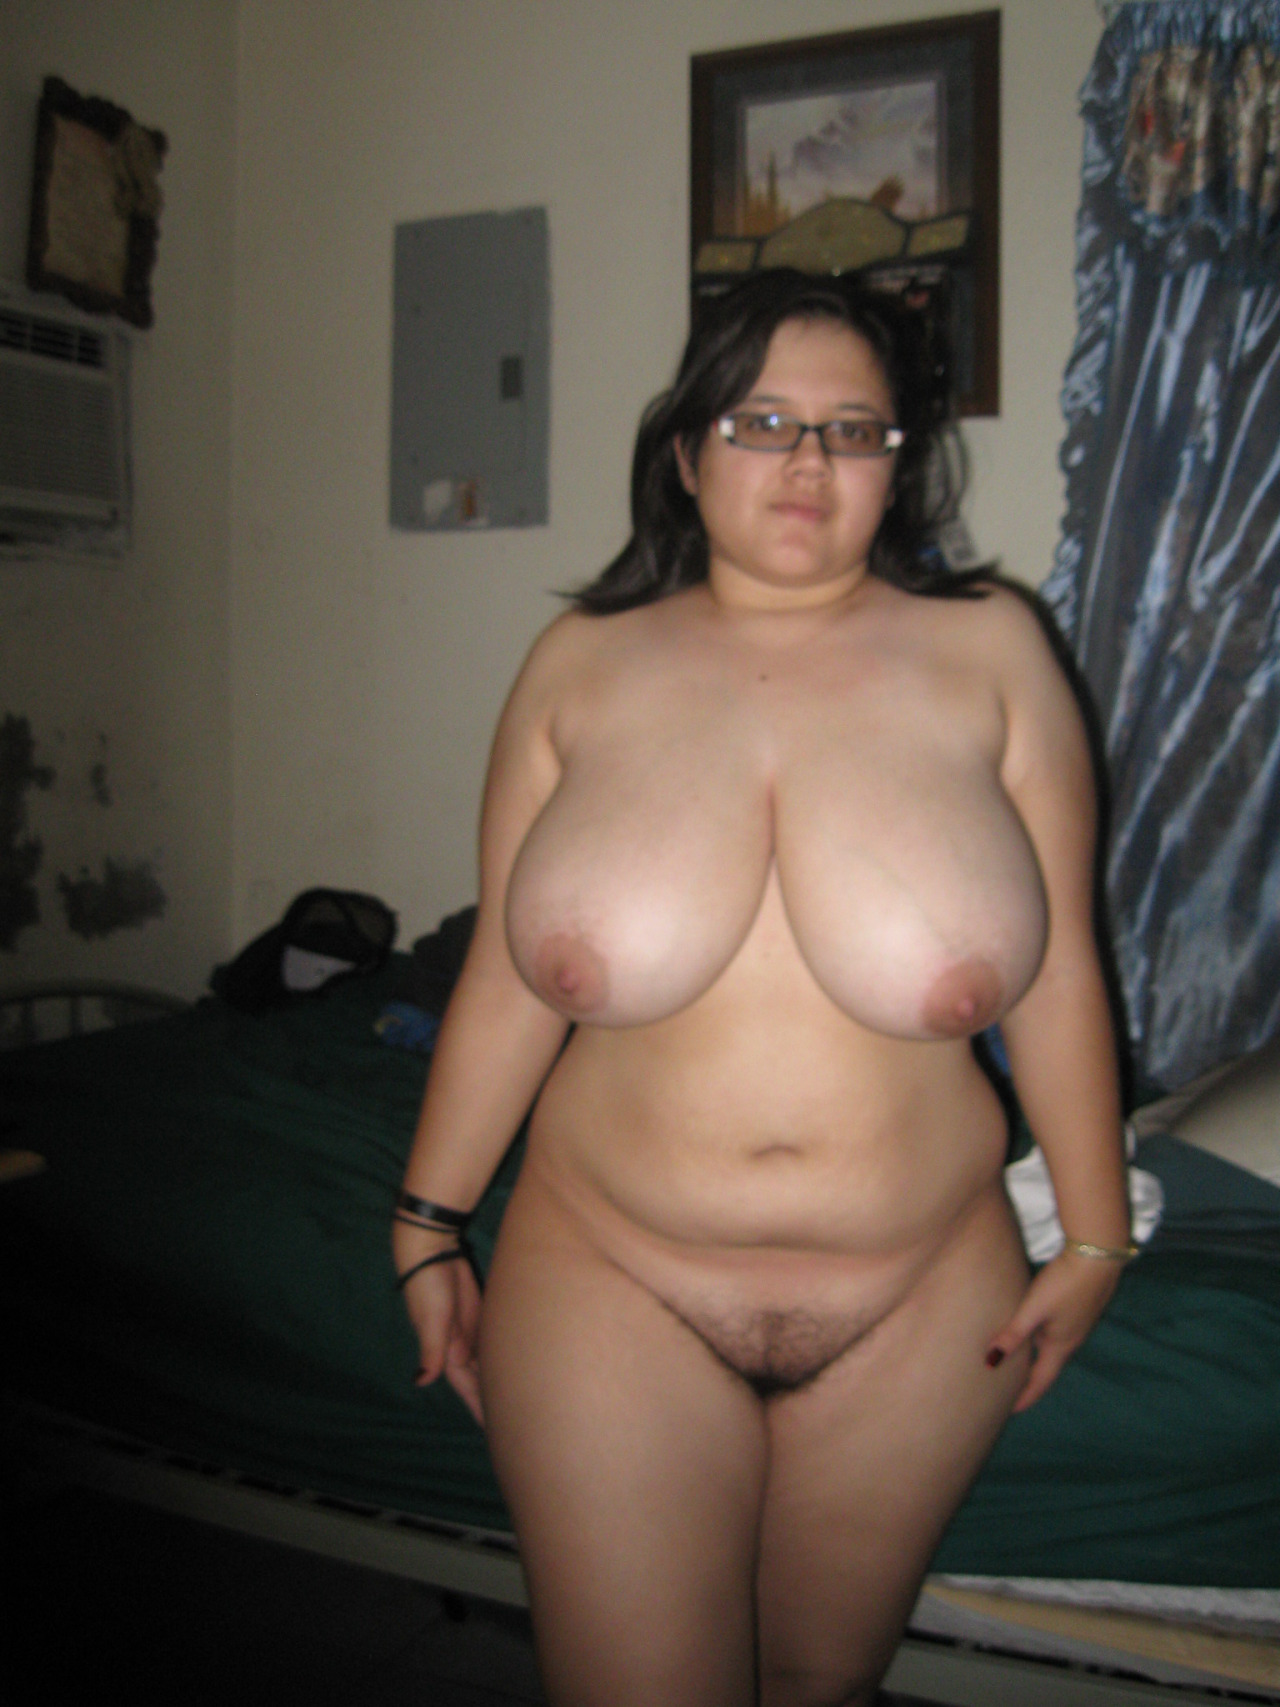 Enjoys that Chubby nude amateur girlds how it's